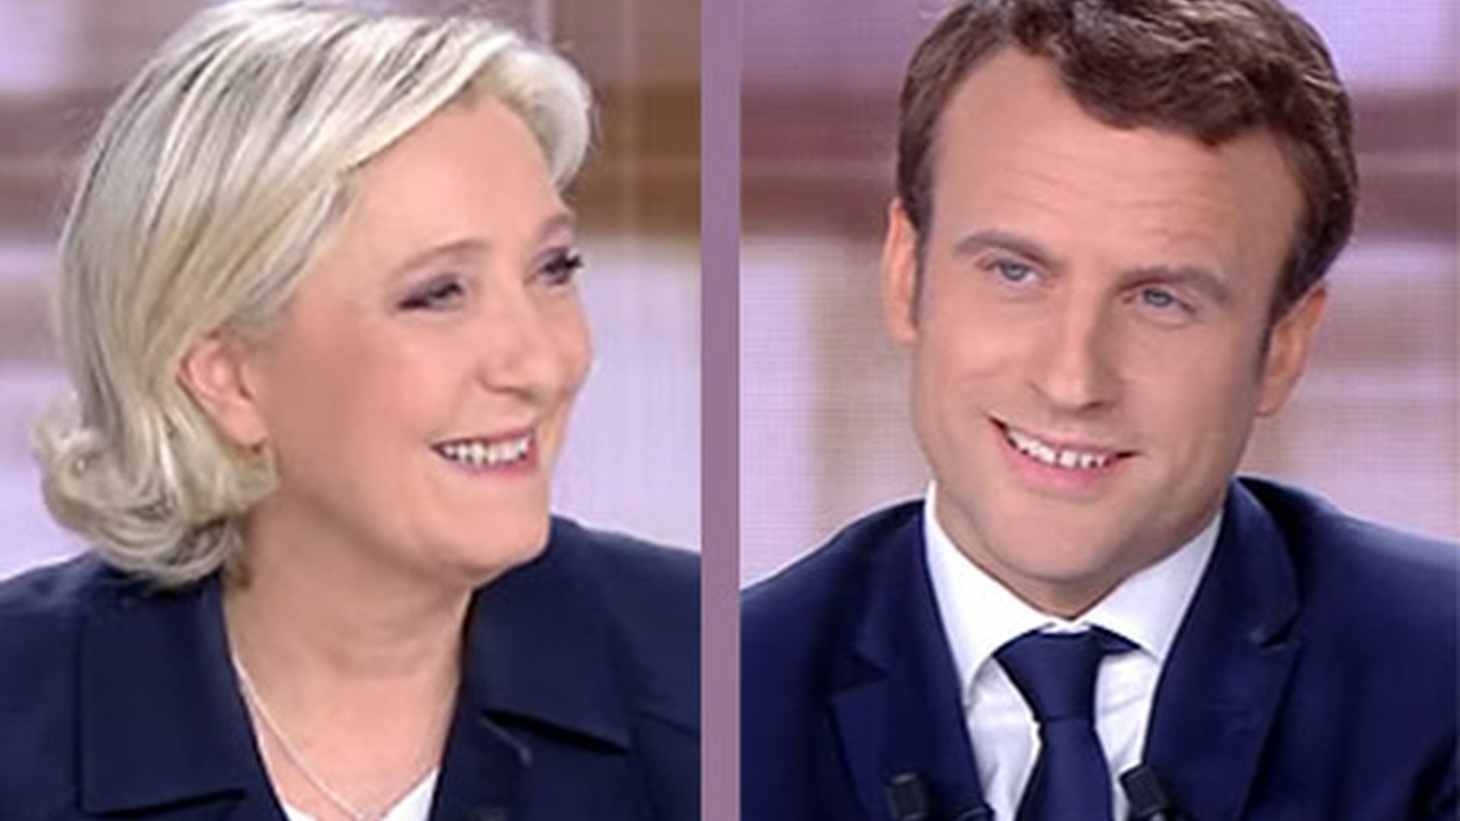 On Sunday, French voters will choose between Marine Le Pen and Emmanuel Macron in a unique presidential election. For the first time, neither candidate represents one of the major parties that have led the country before. And the two have radically different visions. Macron is for globalization and European integration.